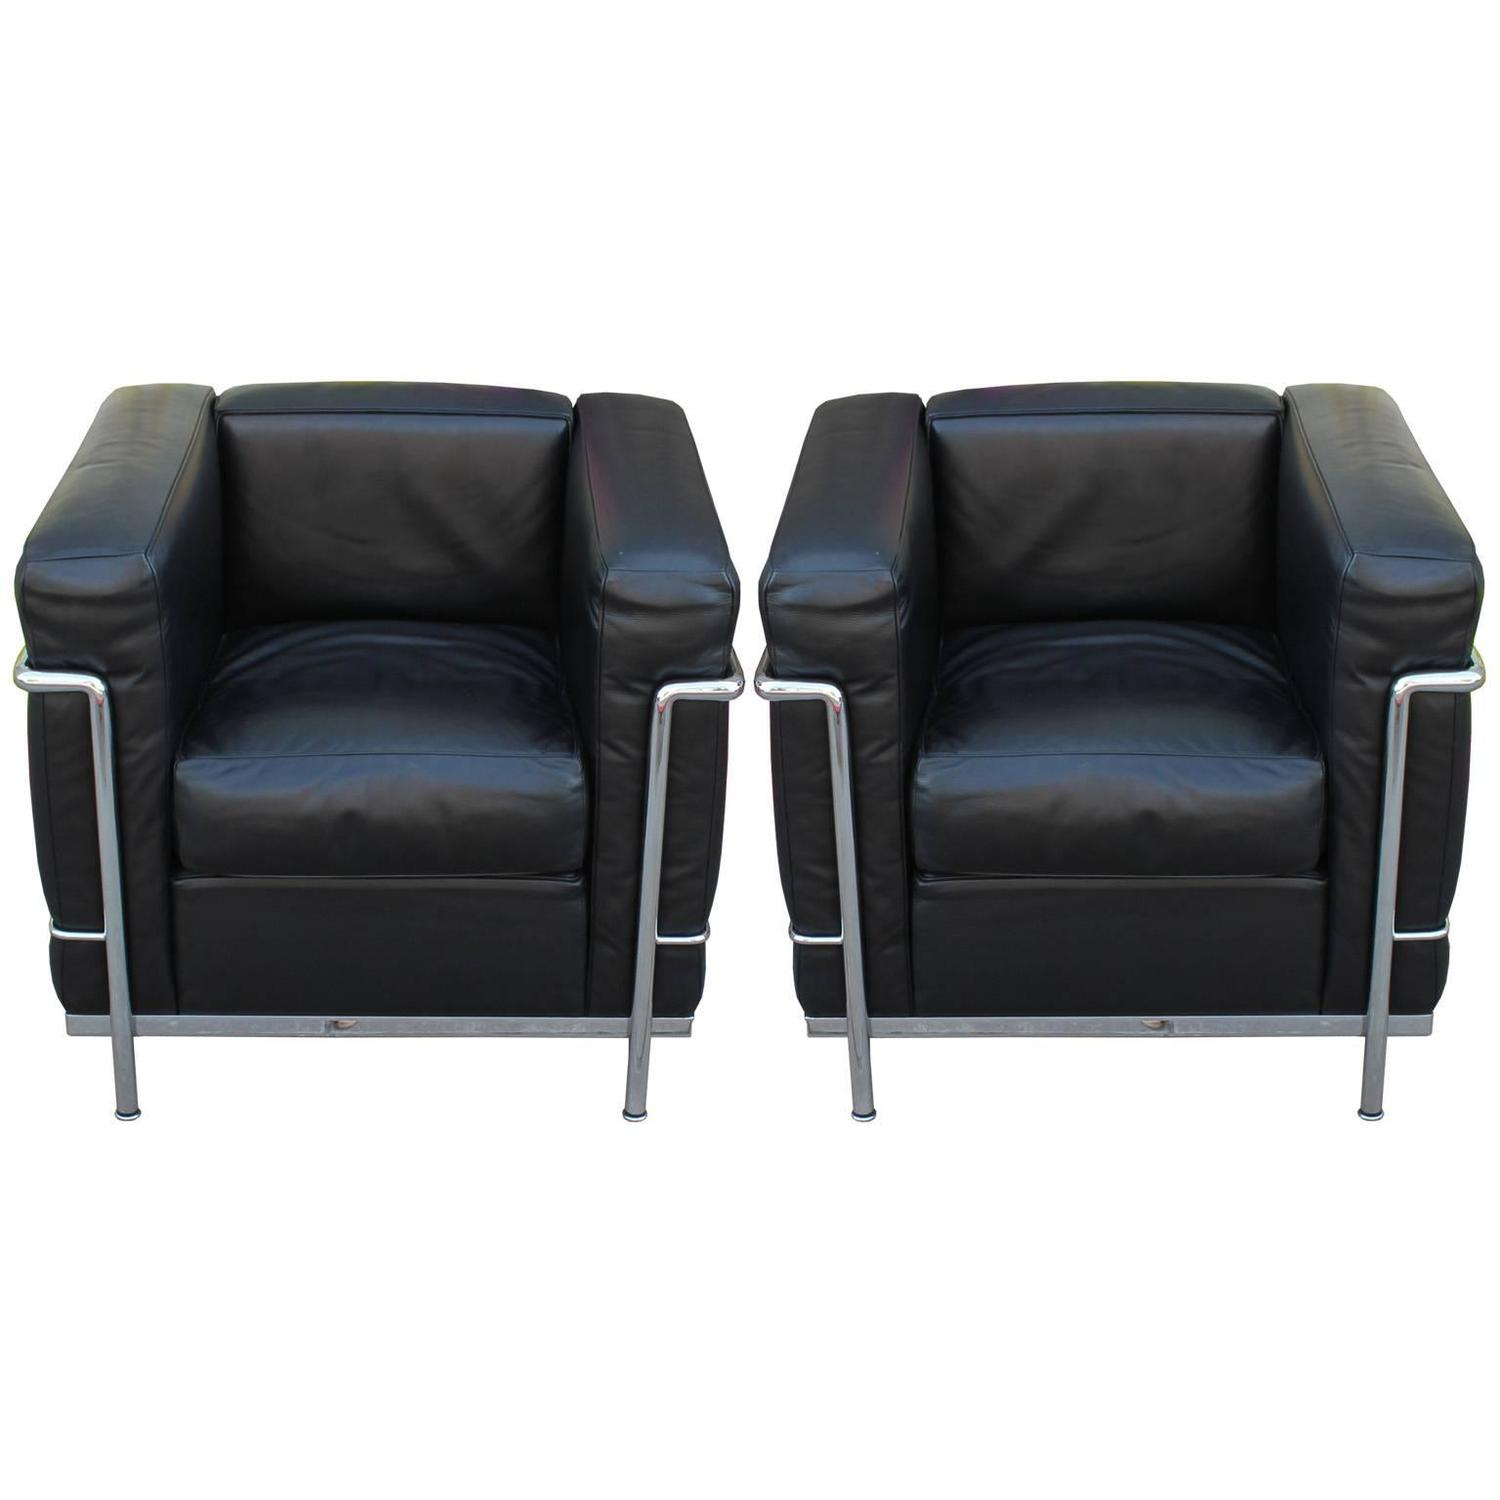 Pair Of Le Corbusier For Cassina Lc2 Club Chairs At 1stdibs